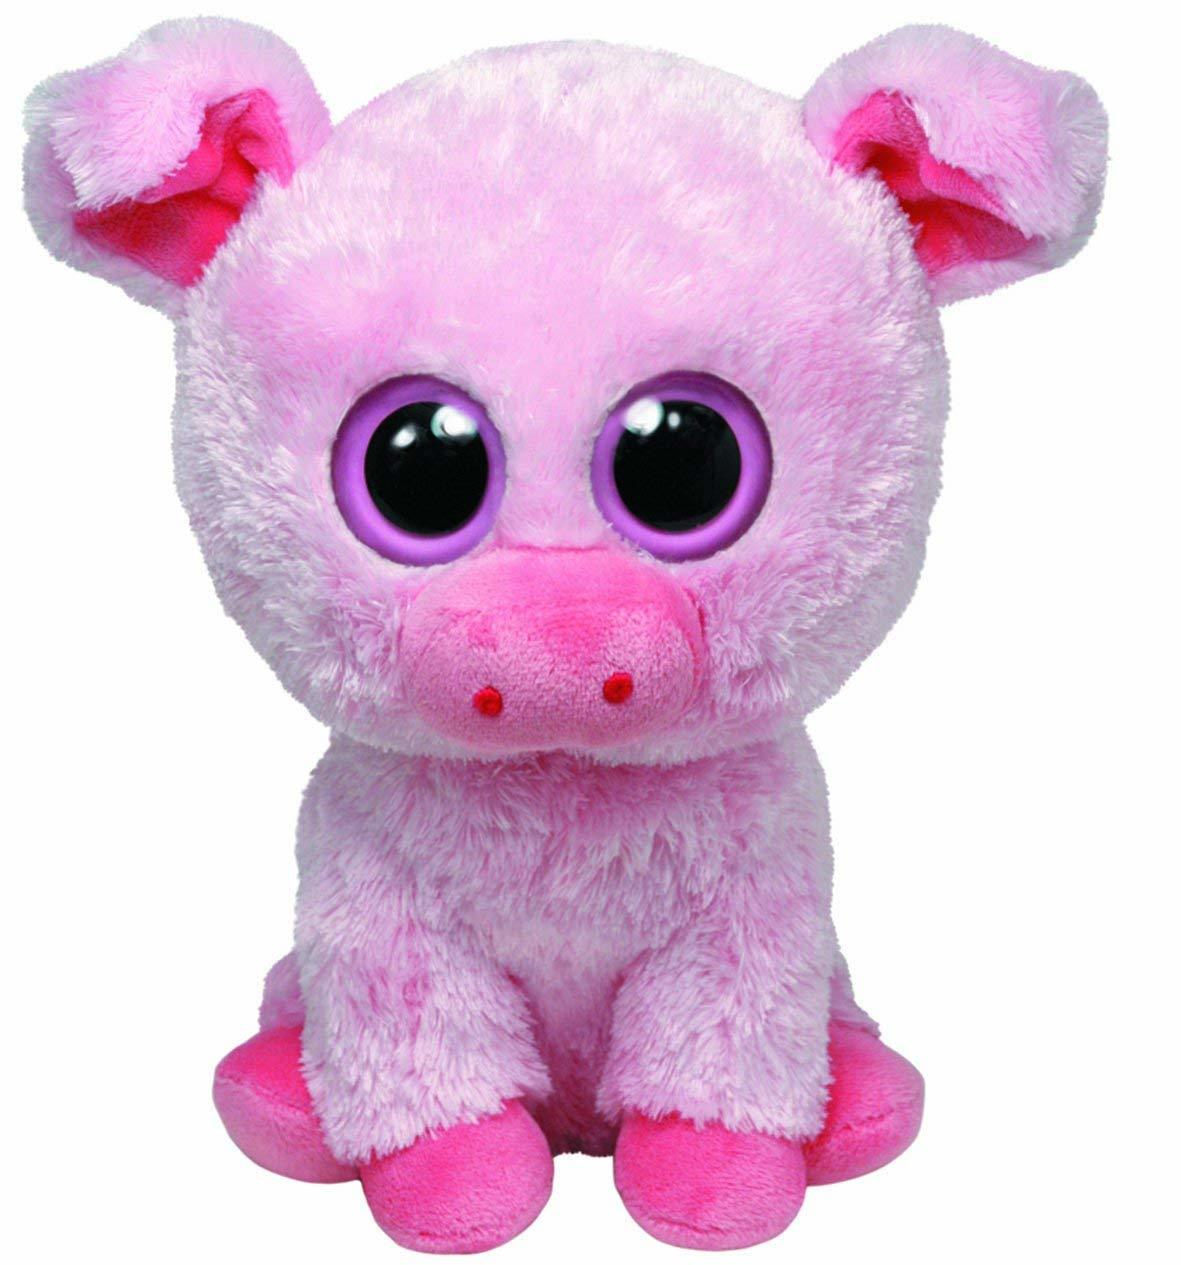 c50257538fd Ty Beanie Boos Buddies Corky The Pig and 50 similar items